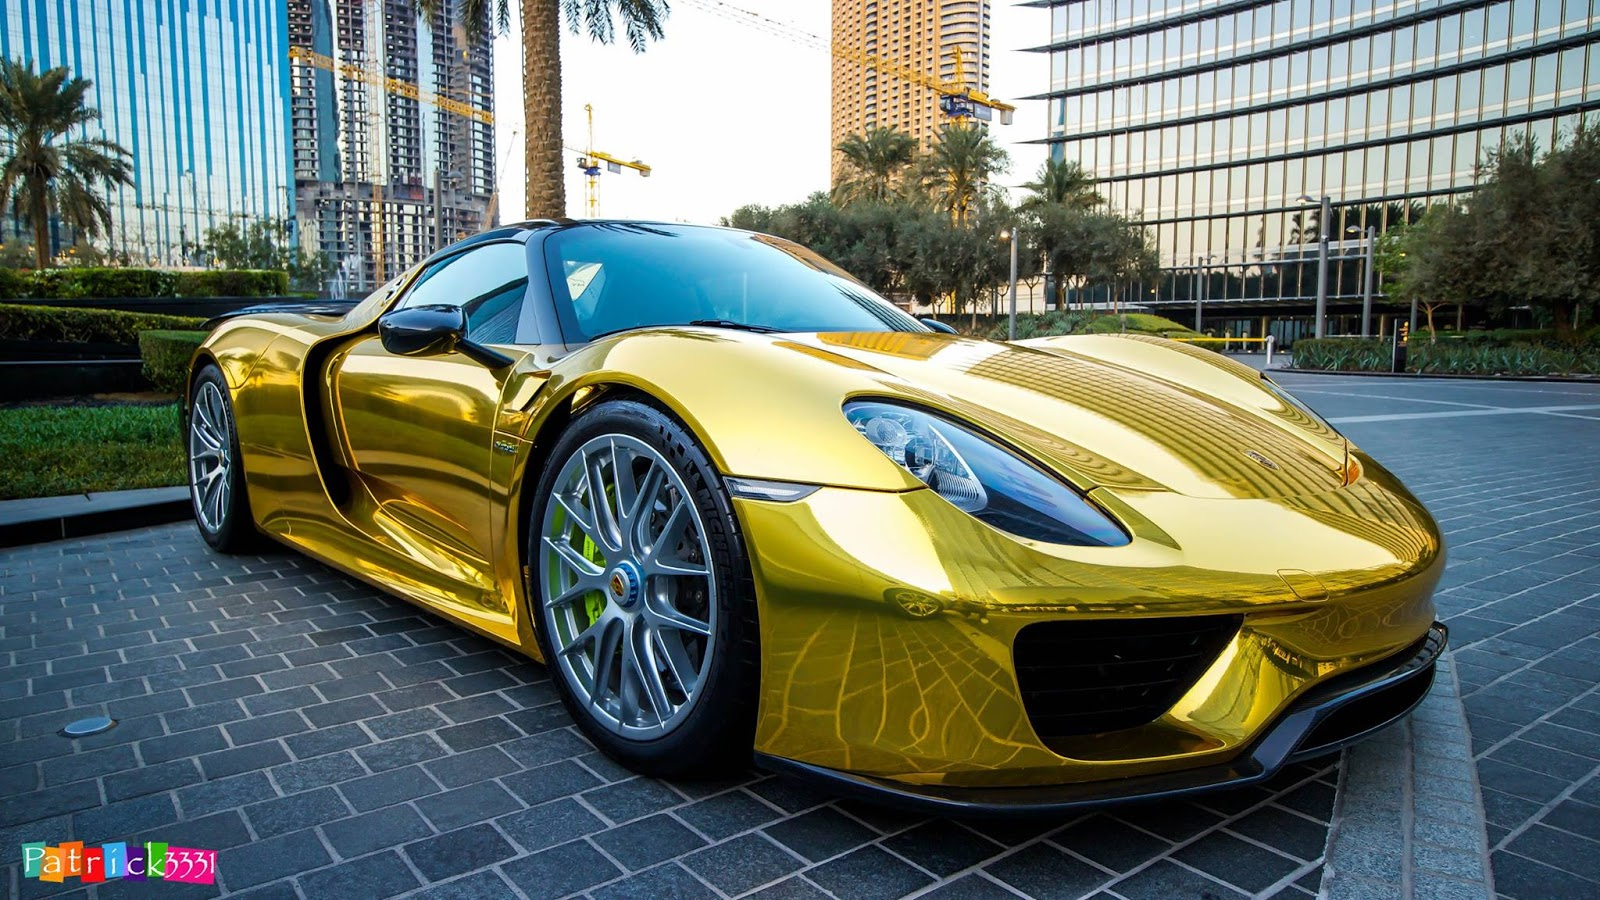 Porsche 918 Spyder Wears Traditional Supercar Gold Chrome